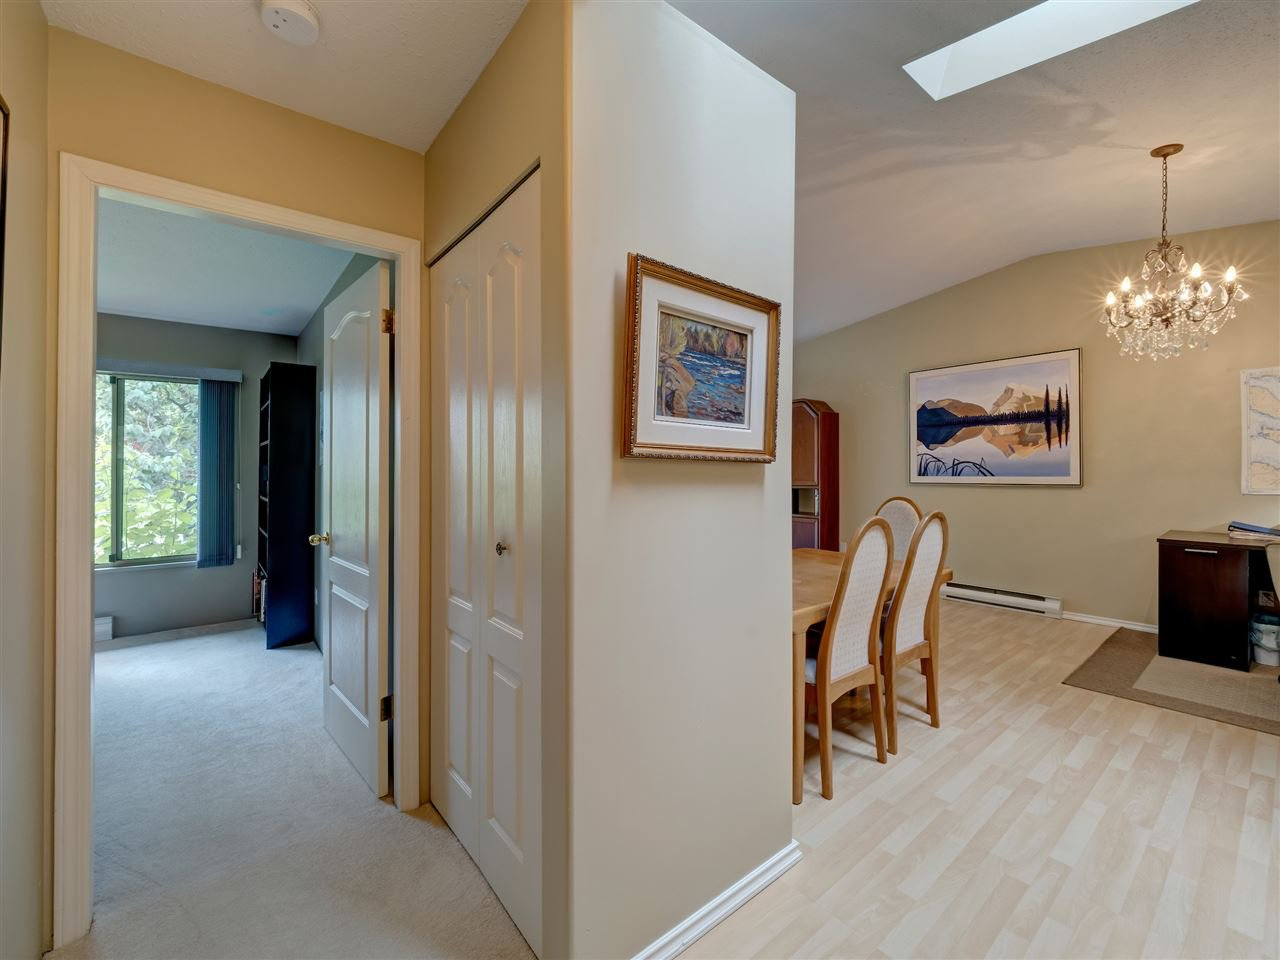 """Photo 22: Photos: 41 555 EAGLECREST Drive in Gibsons: Gibsons & Area Townhouse for sale in """"GEORGIA MIRAGE"""" (Sunshine Coast)  : MLS®# R2485008"""